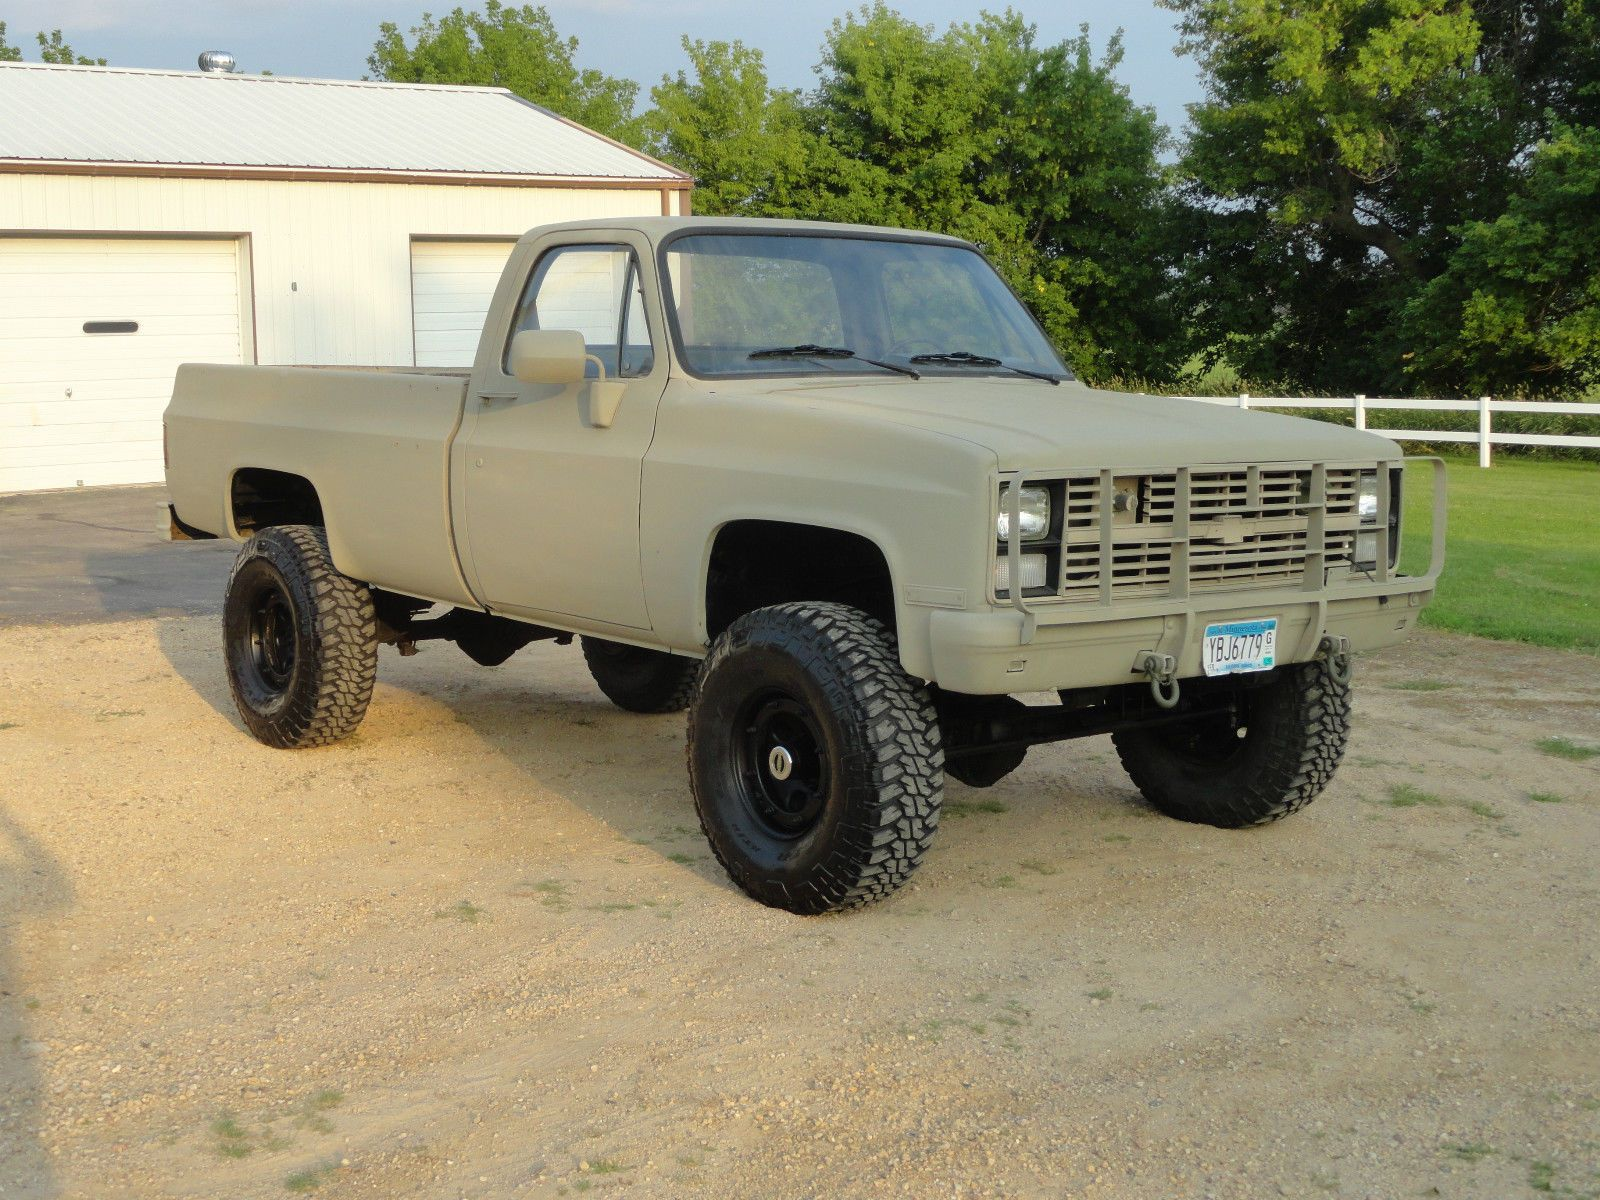 1984 Chevy K30 Cucv  I really really really want one of these